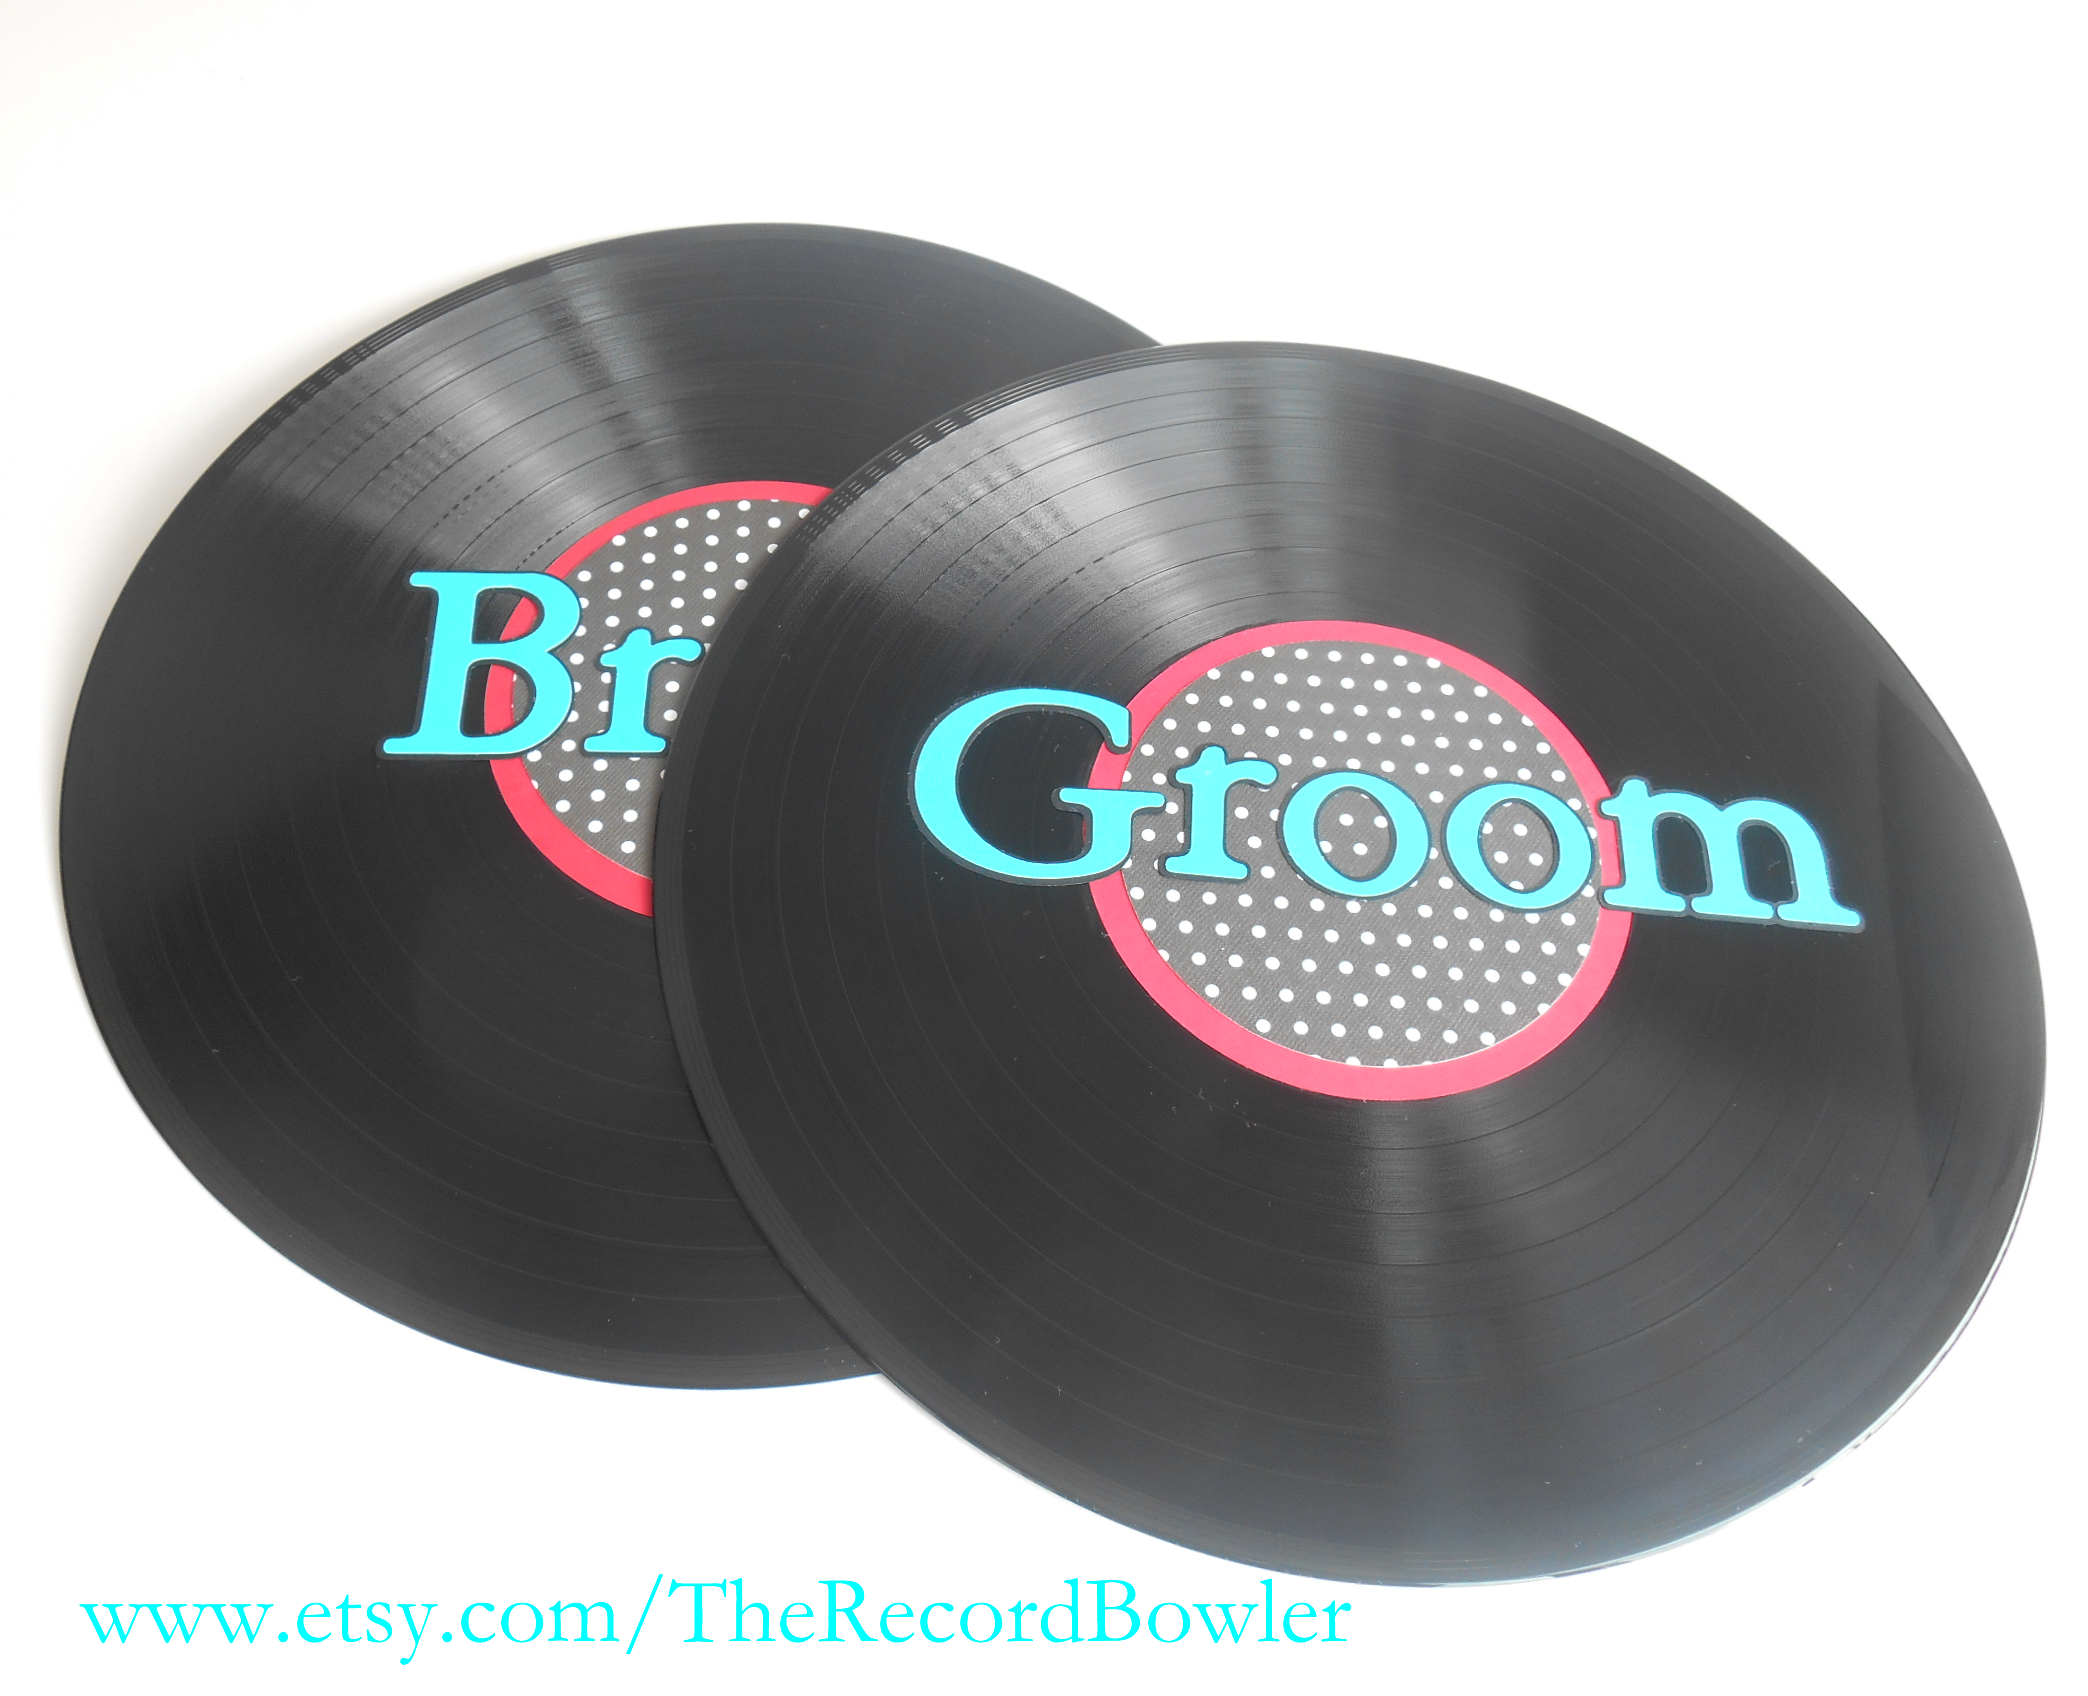 Rock n roll wedding theme record decorations colored vinyl records